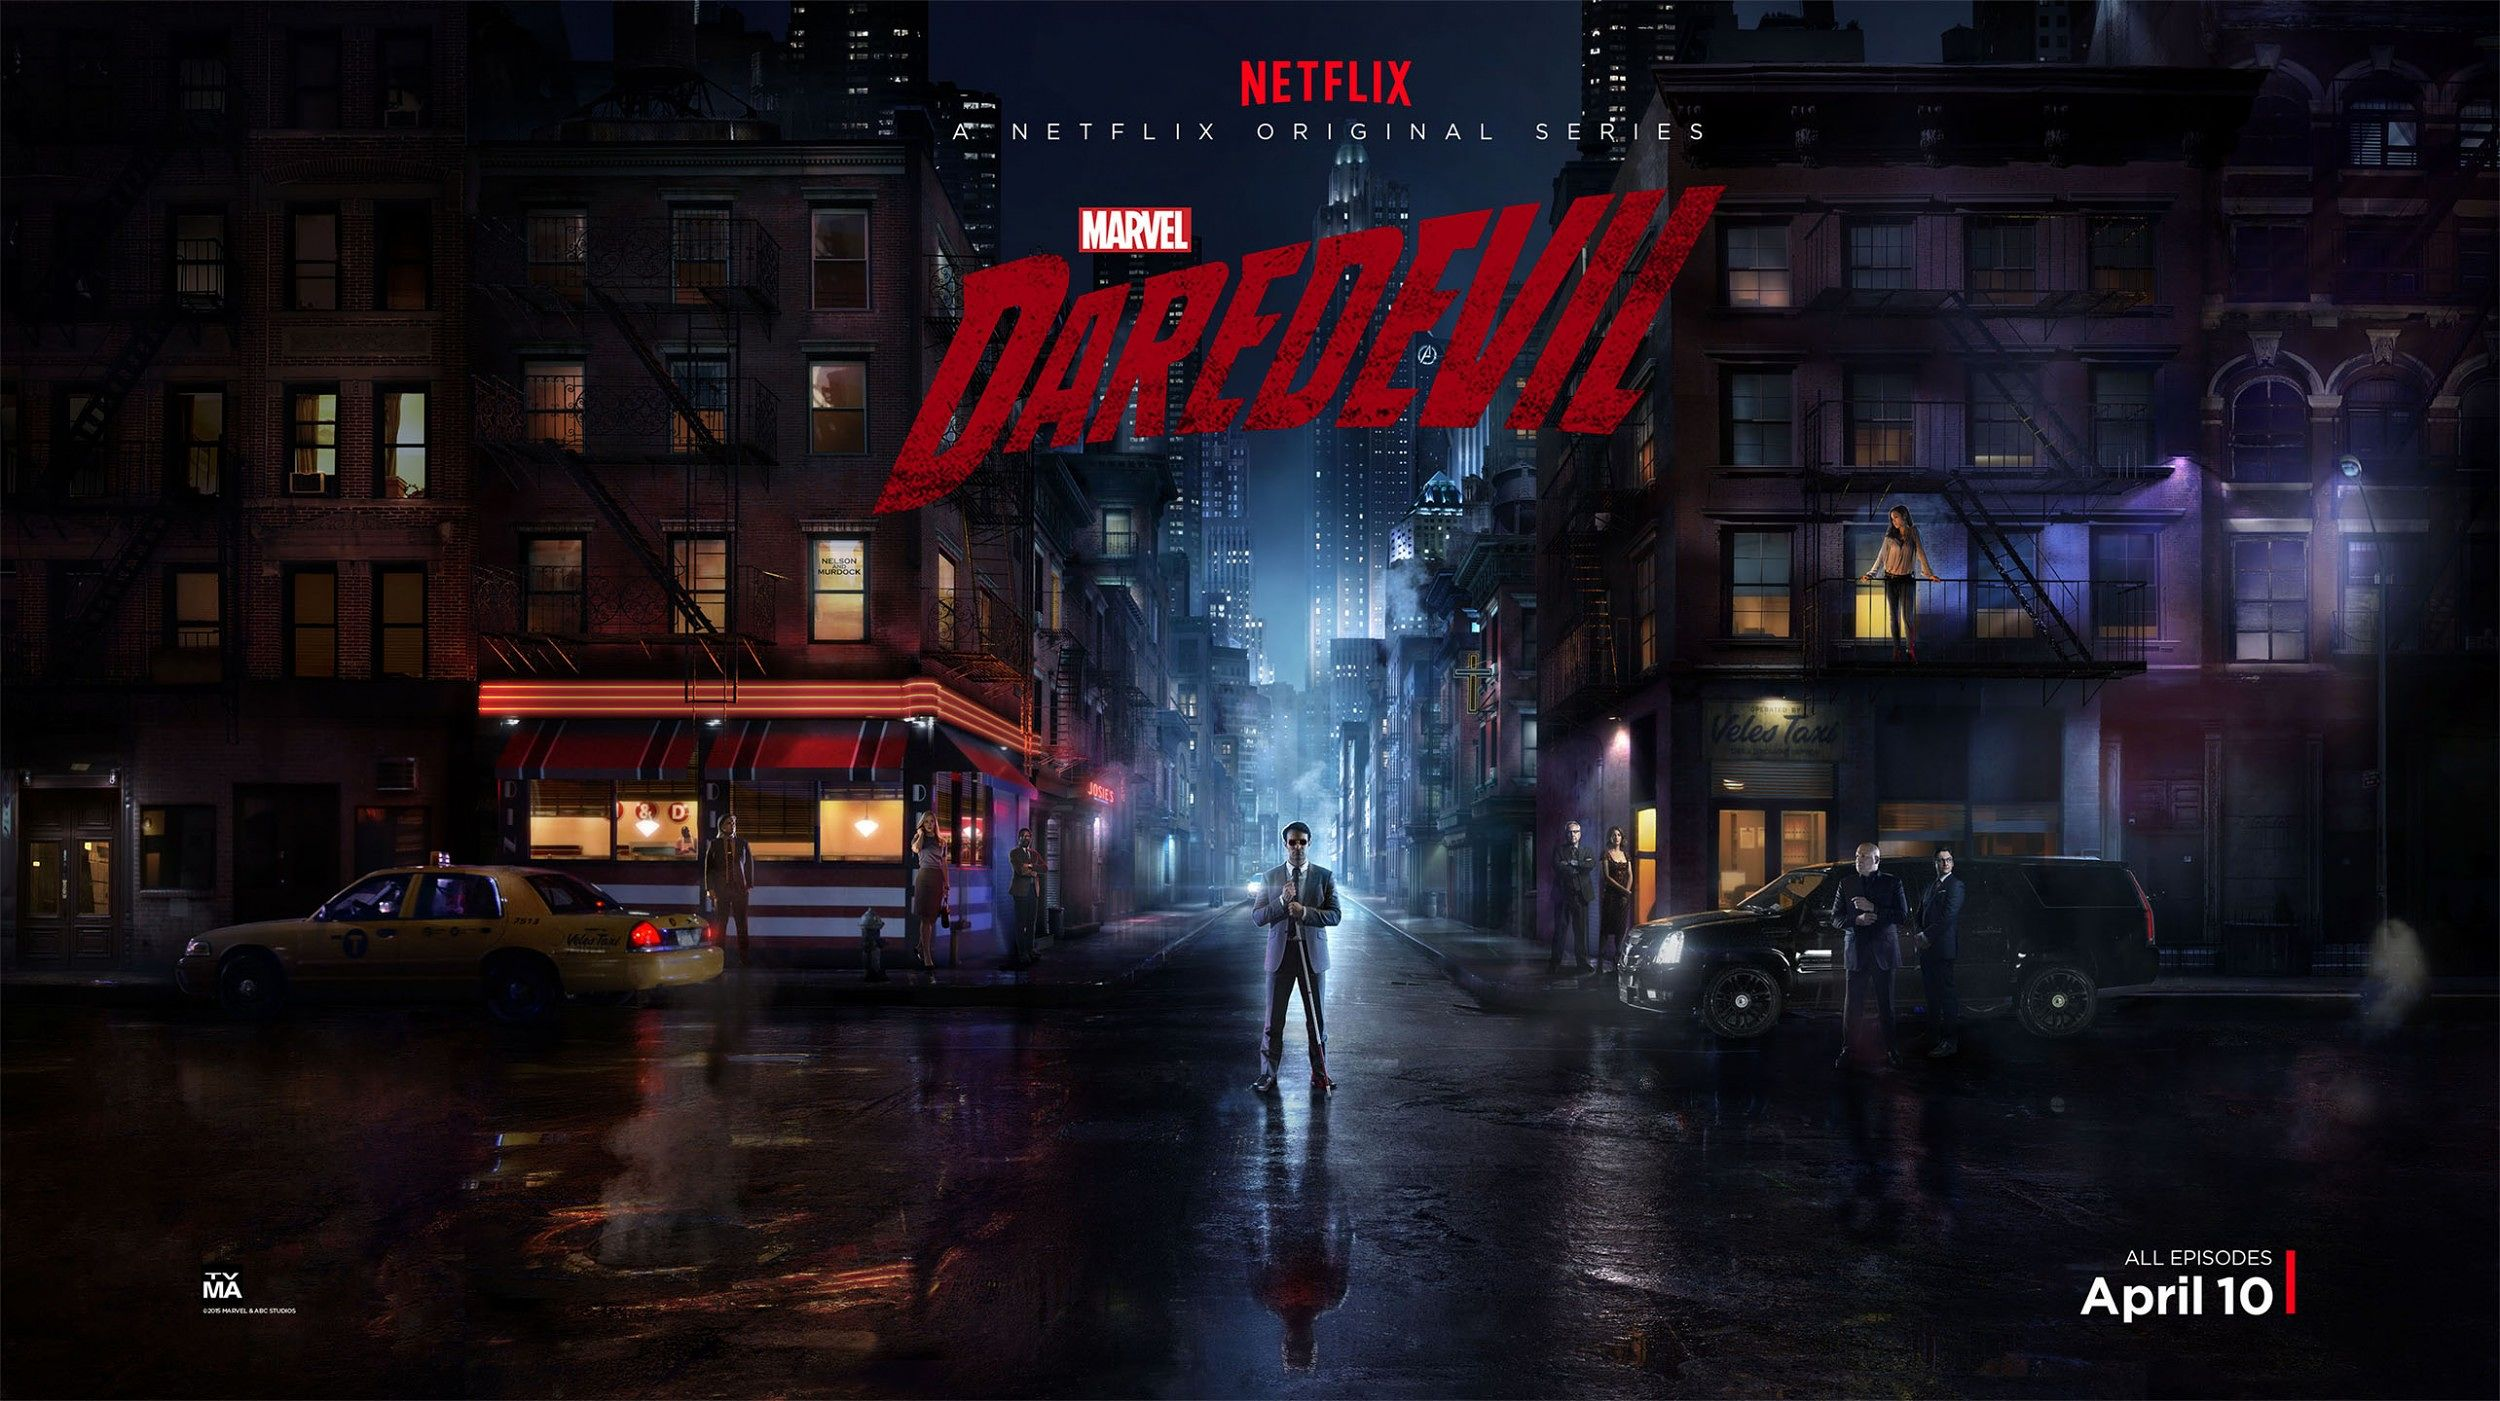 Marvel's Daredevil on ShowBox